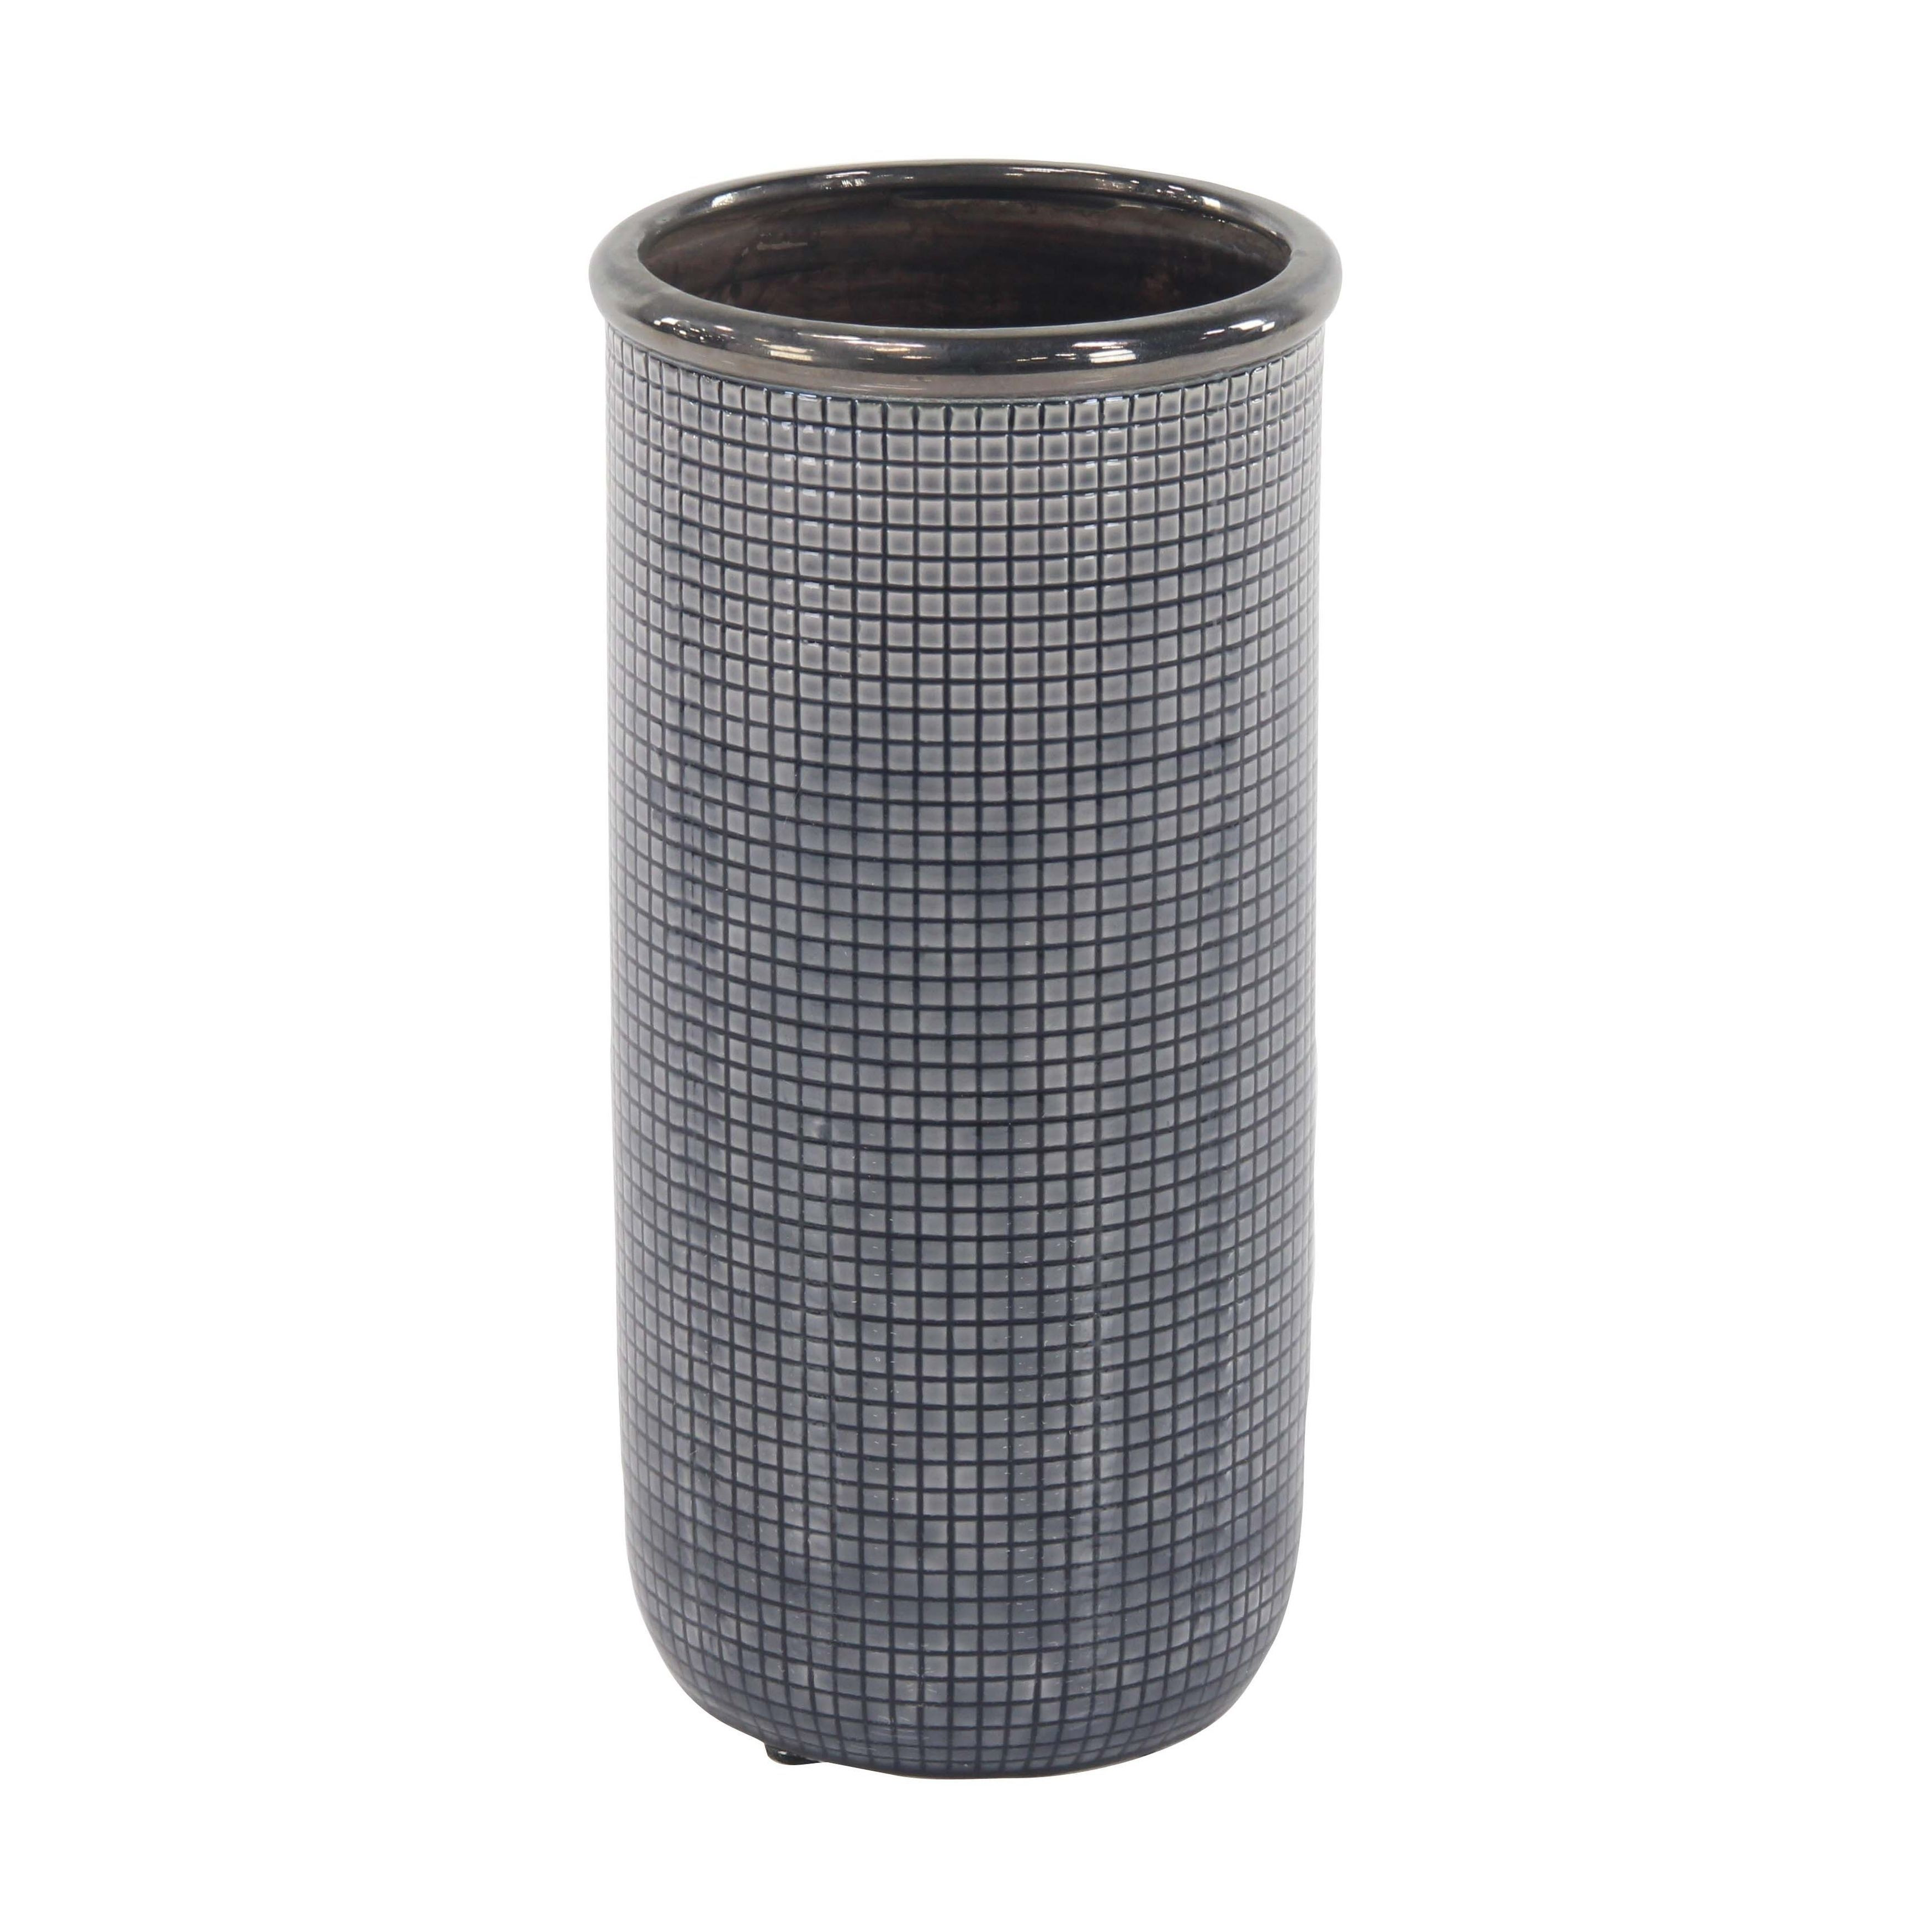 10.5 inch cylinder vases of kassatex mesh toothbrush holder intended for studio 350 16 inch contemporary ceramic blue and black mesh inspired vase size large